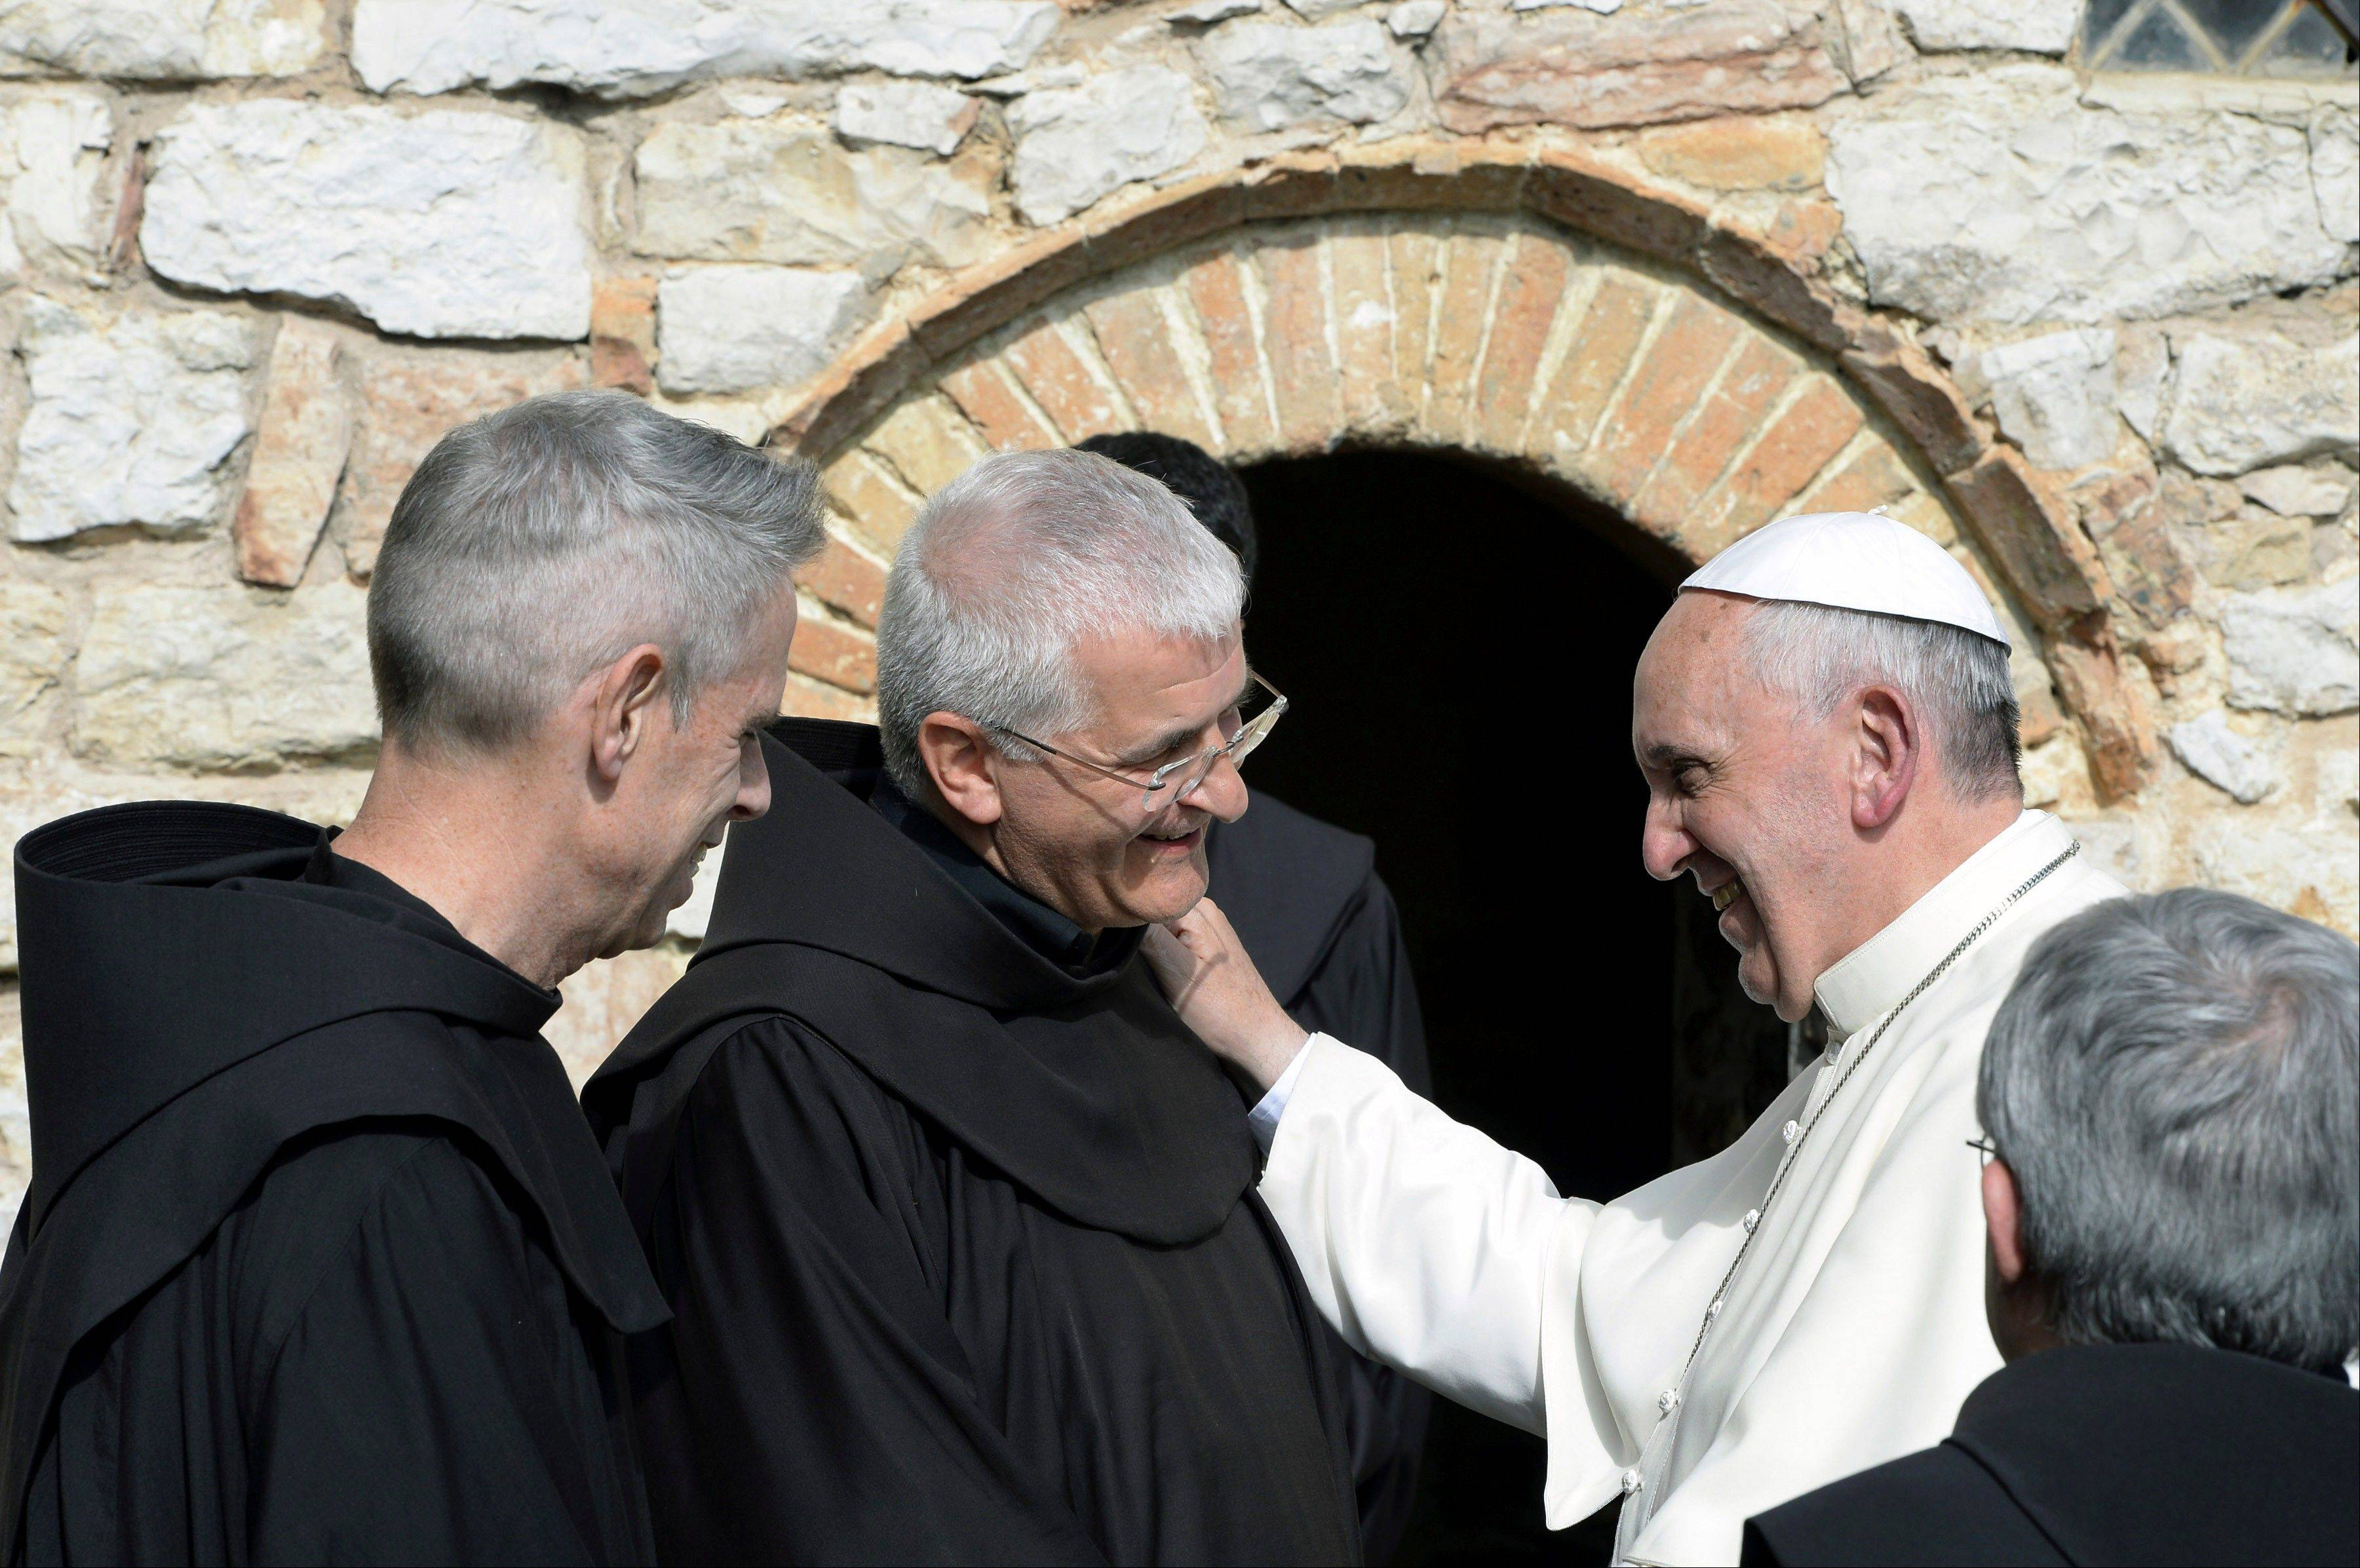 Pope Francis, right, shares a word with friars during his tour of the Eremo delle Carceri hermitage, near Assisi, Italy, Friday, Oct. 4, 2013. Pope Francis took a pilgrimage to his namesake�s hometown Friday, urging the faithful to follow the example of the 13th-century St. Francis, who renounced a wealthy, dissolute lifestyle to embrace a life of poverty and service to the poor.